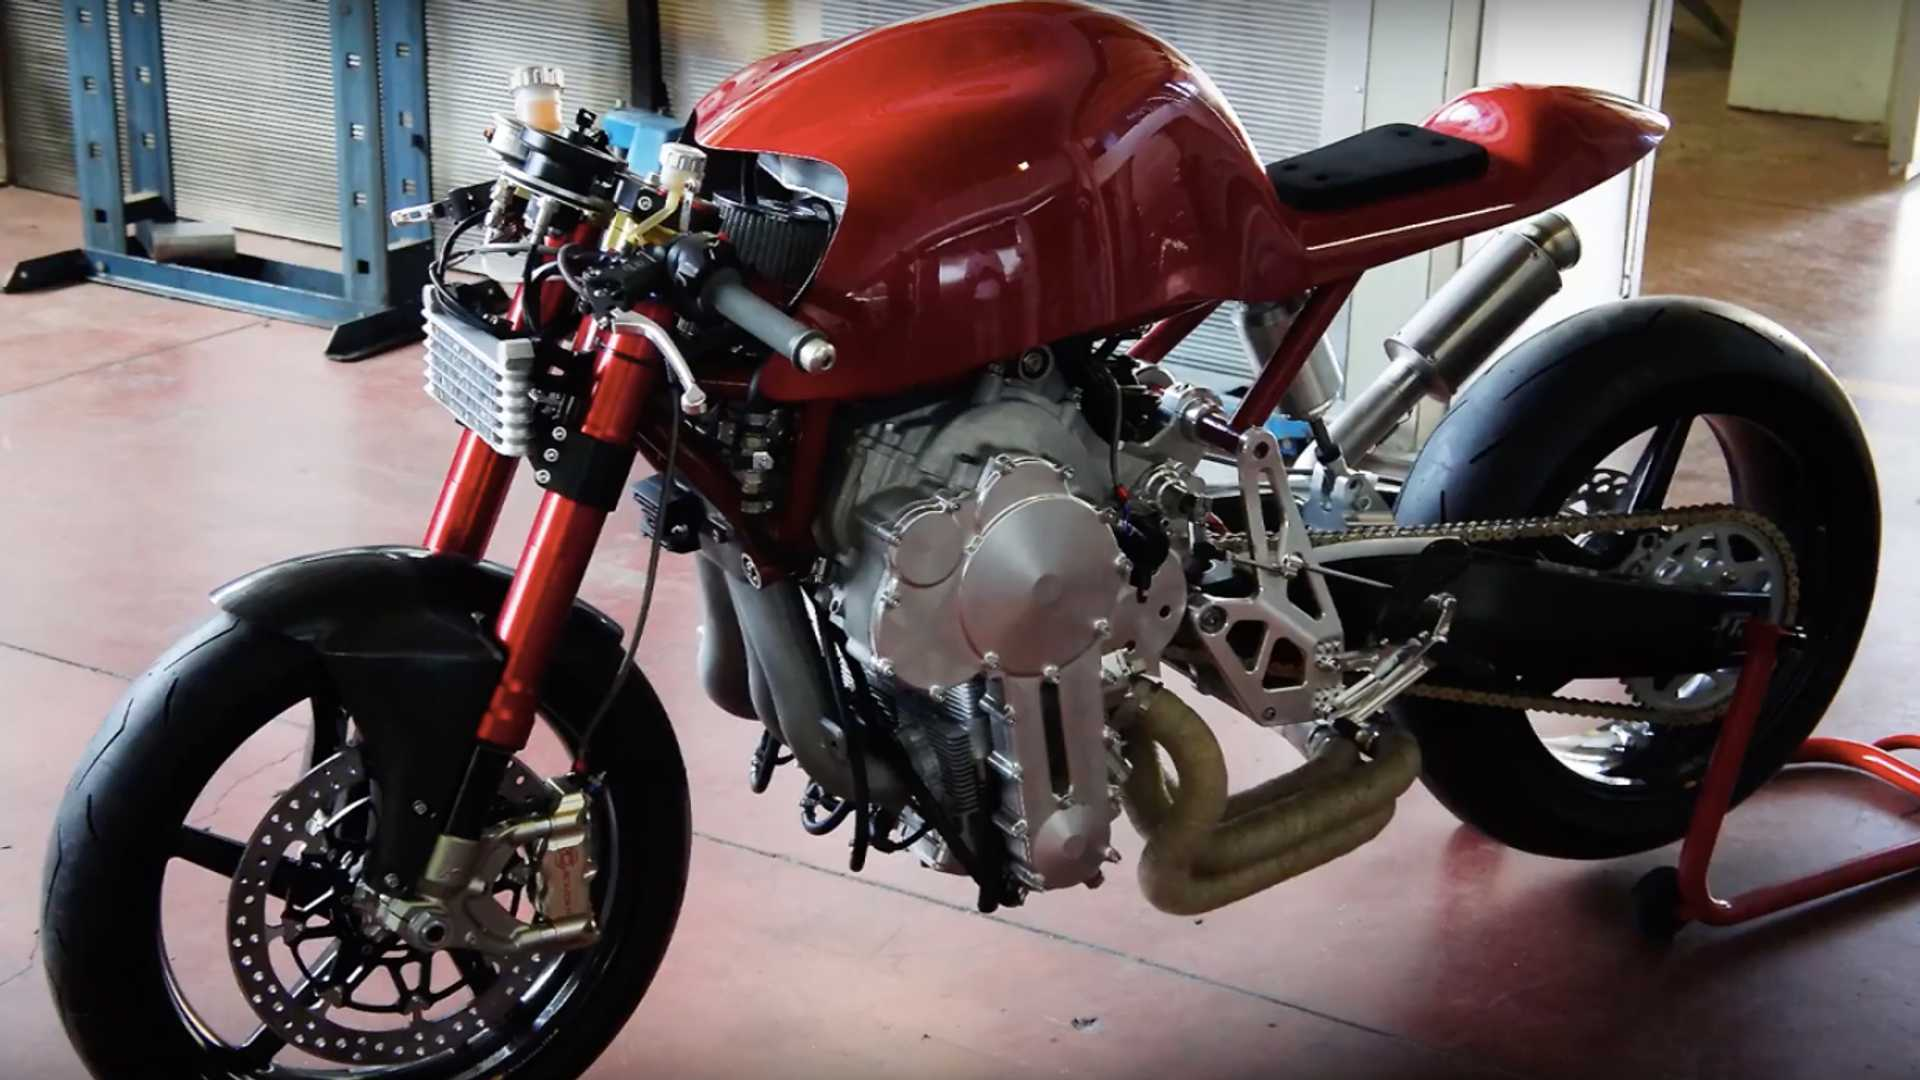 The Bike With The Upside Down Engine Ready For Production